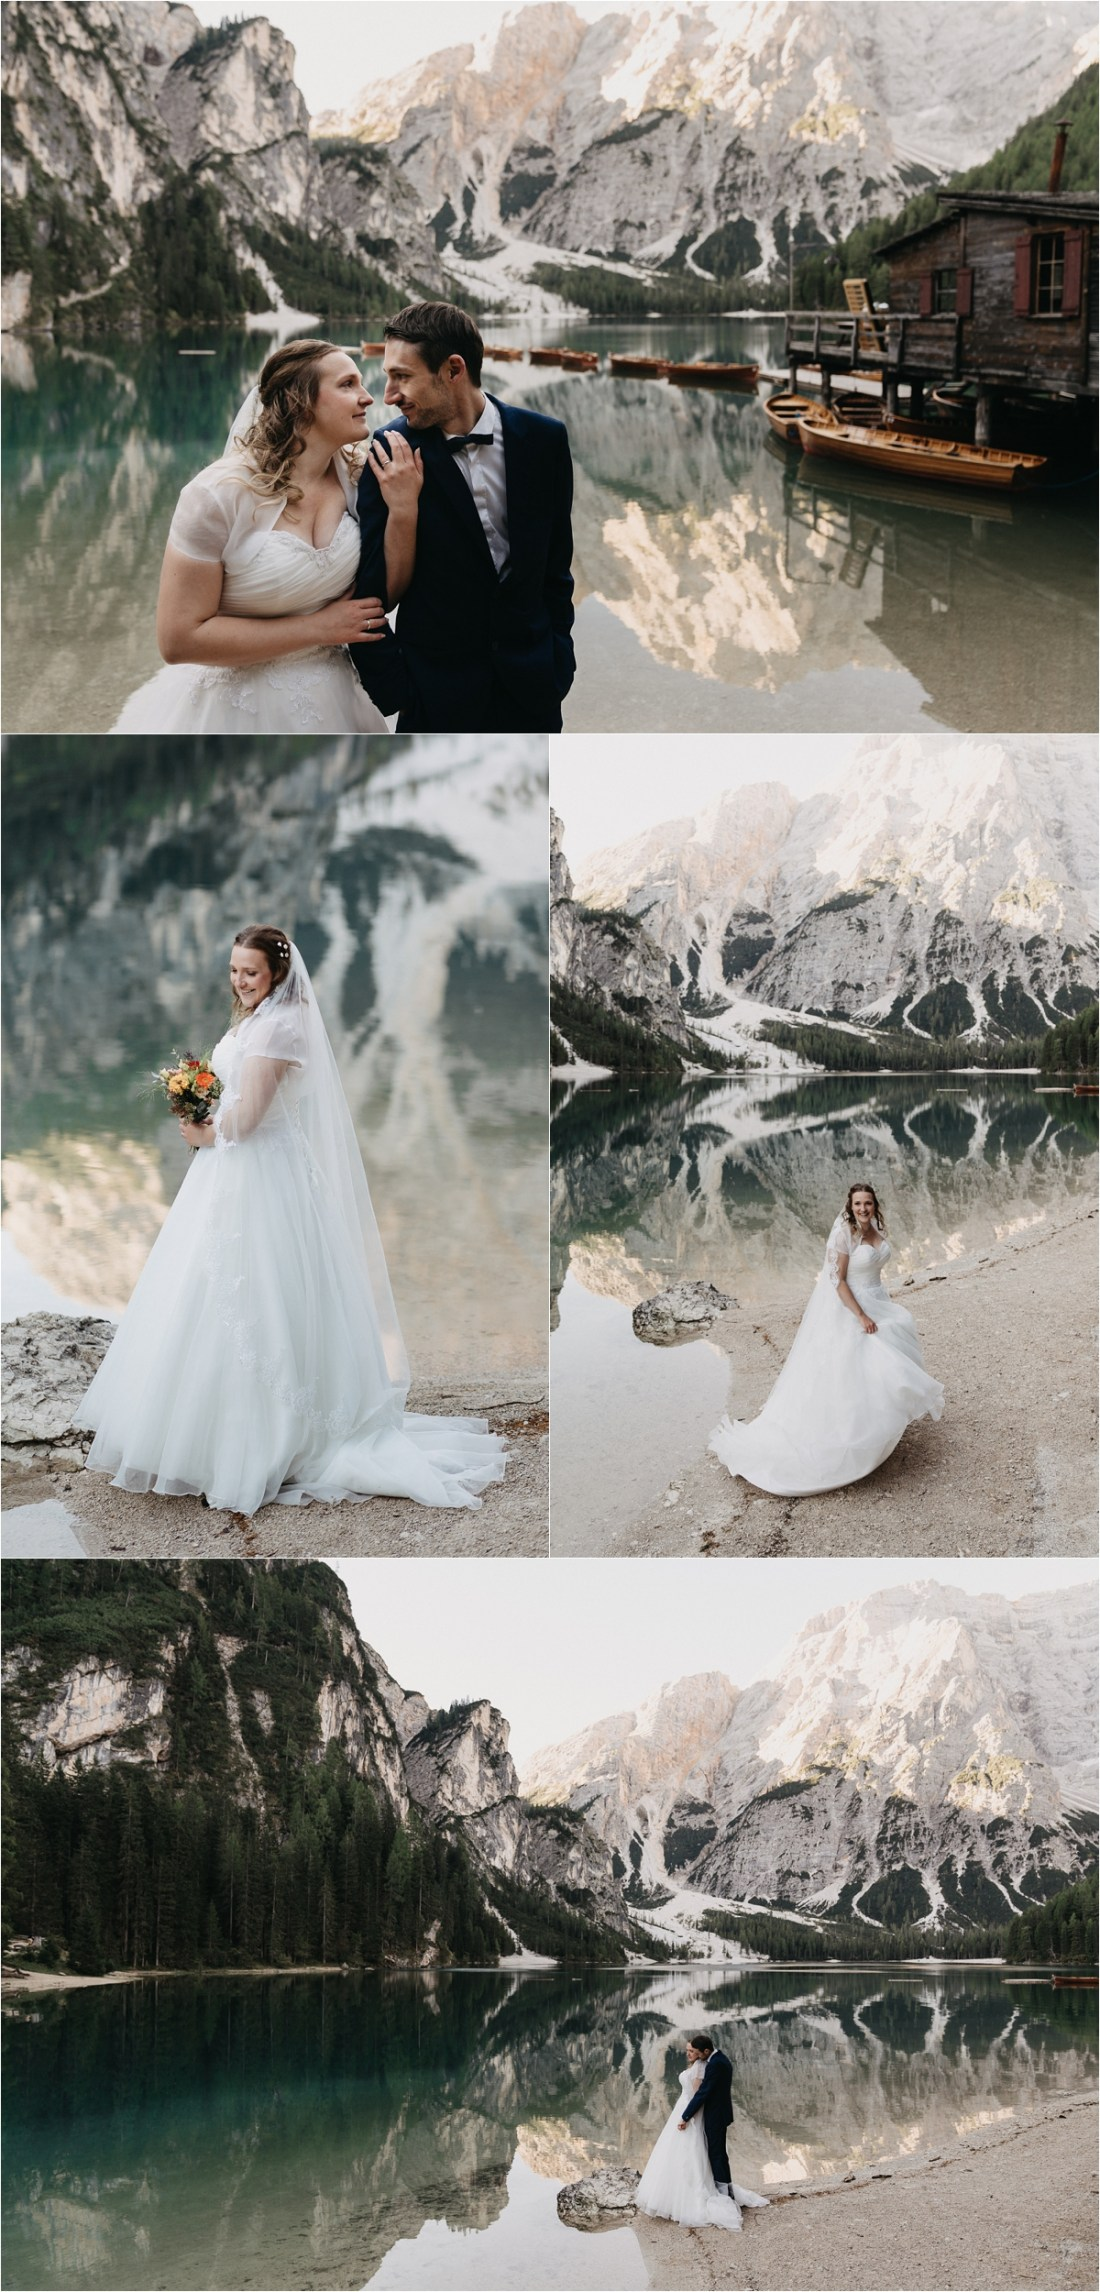 The bride and groom walk along the lake shore at Pragser Wildsee by Romany Flower